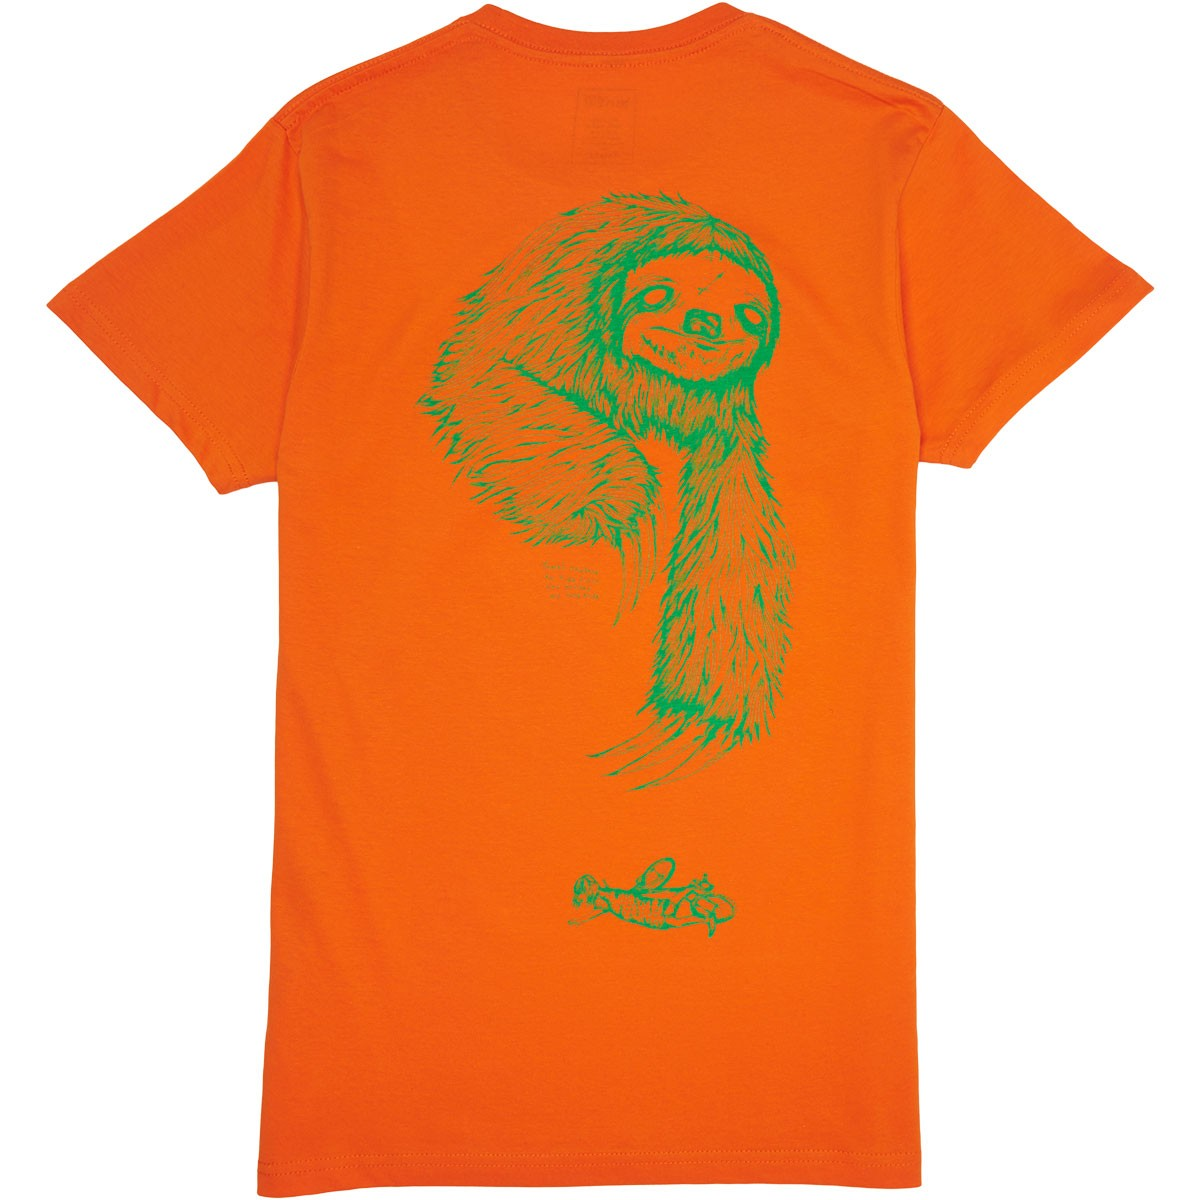 Welcome Sloth T-Shirt - Orange/Neon Green